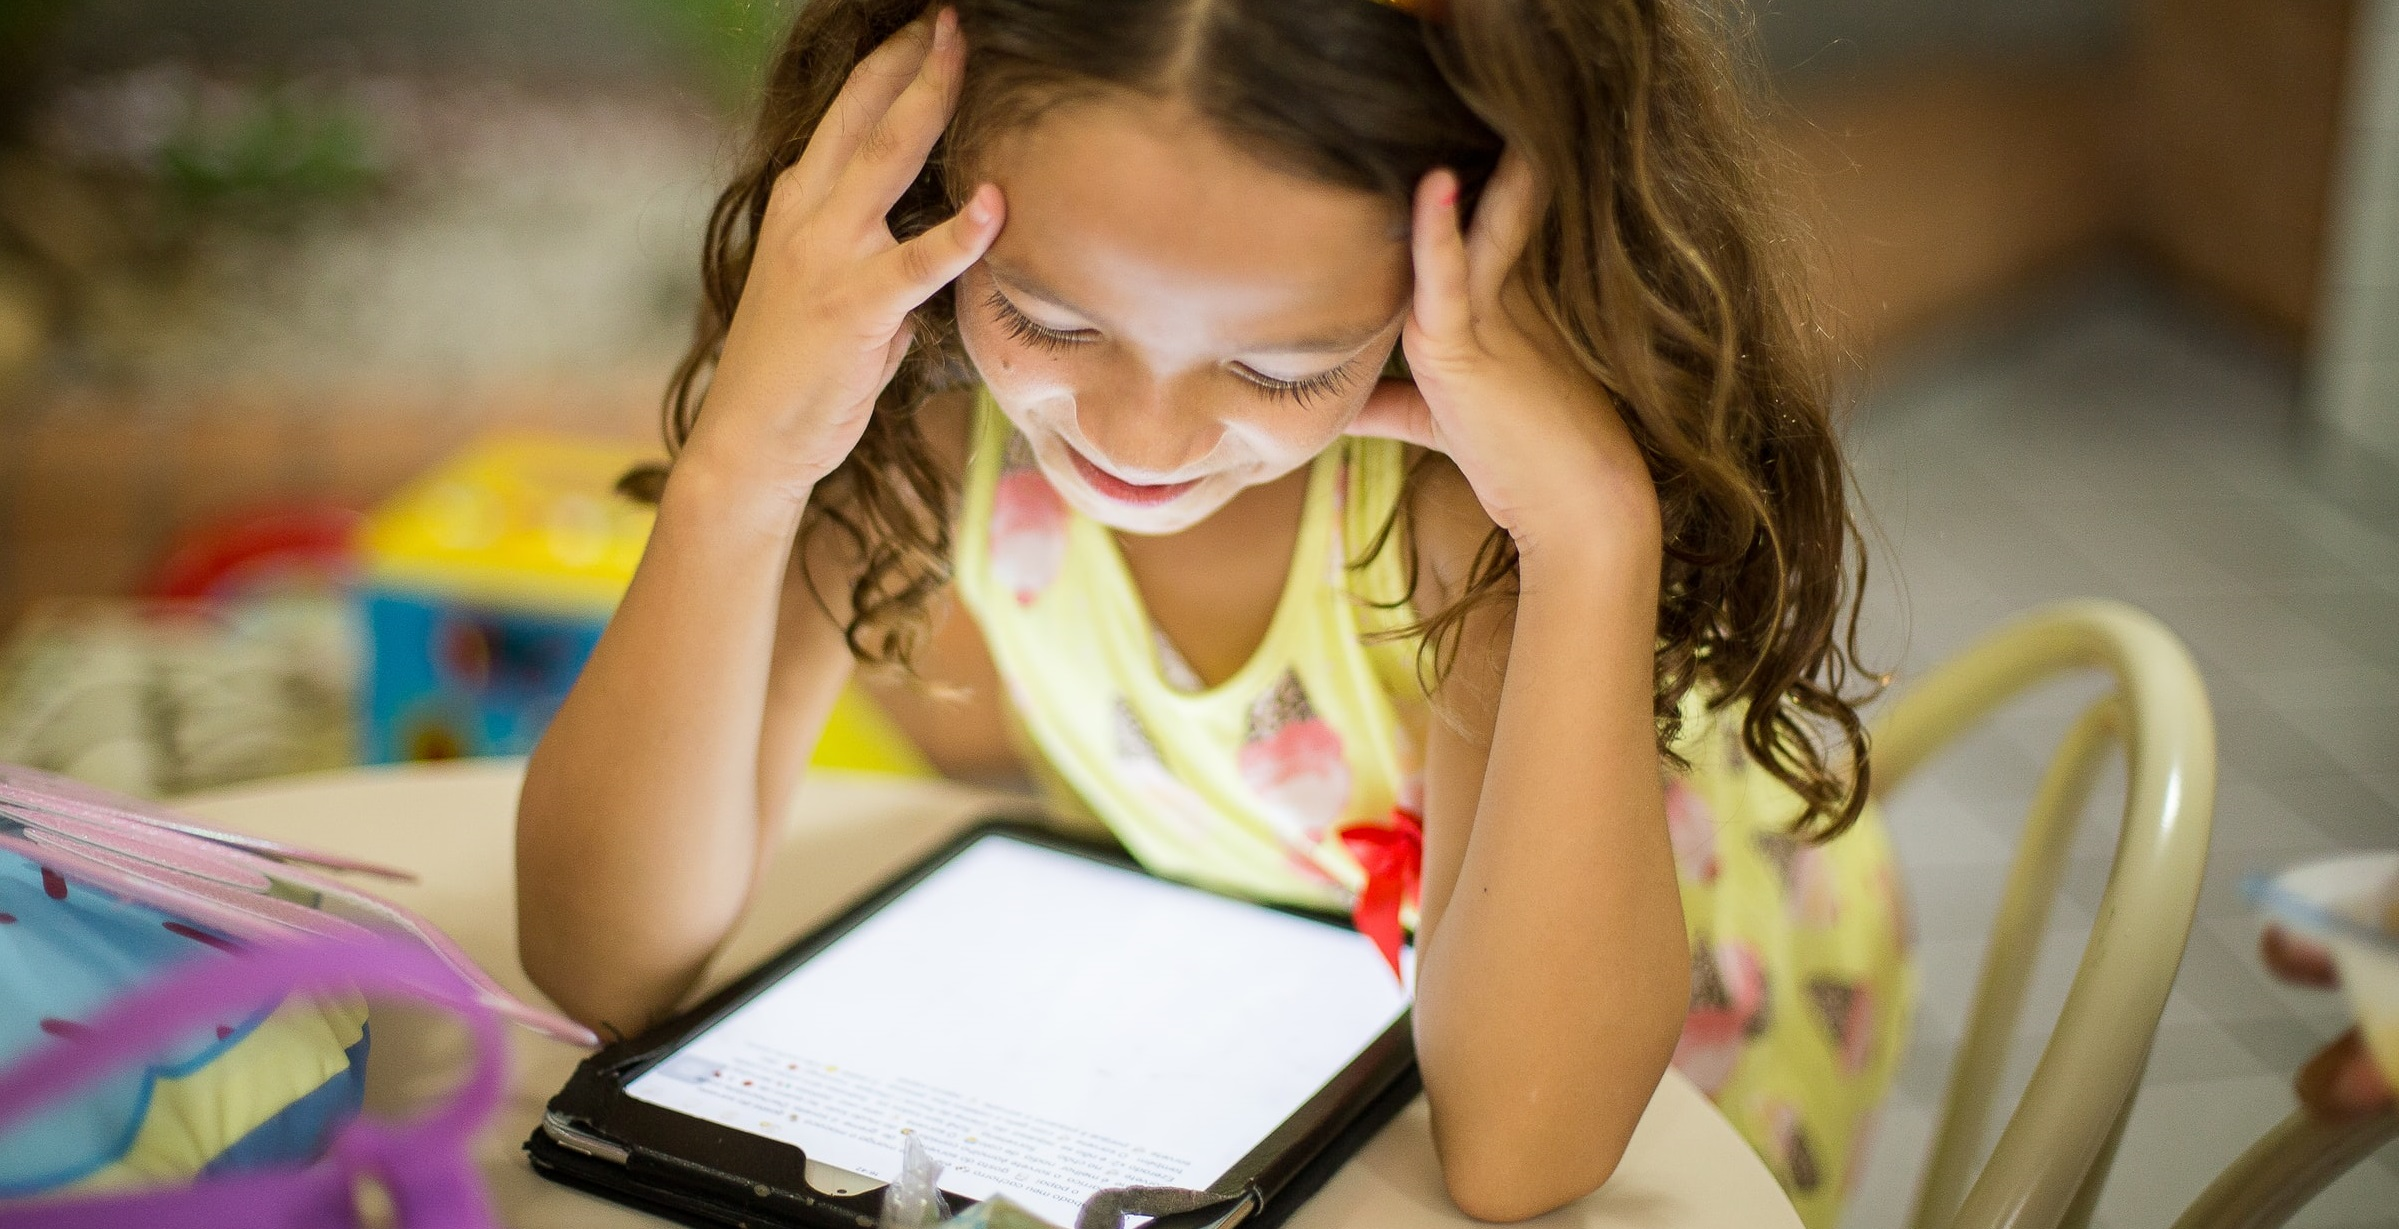 The silver lining in corona times: video-call shared reading with children